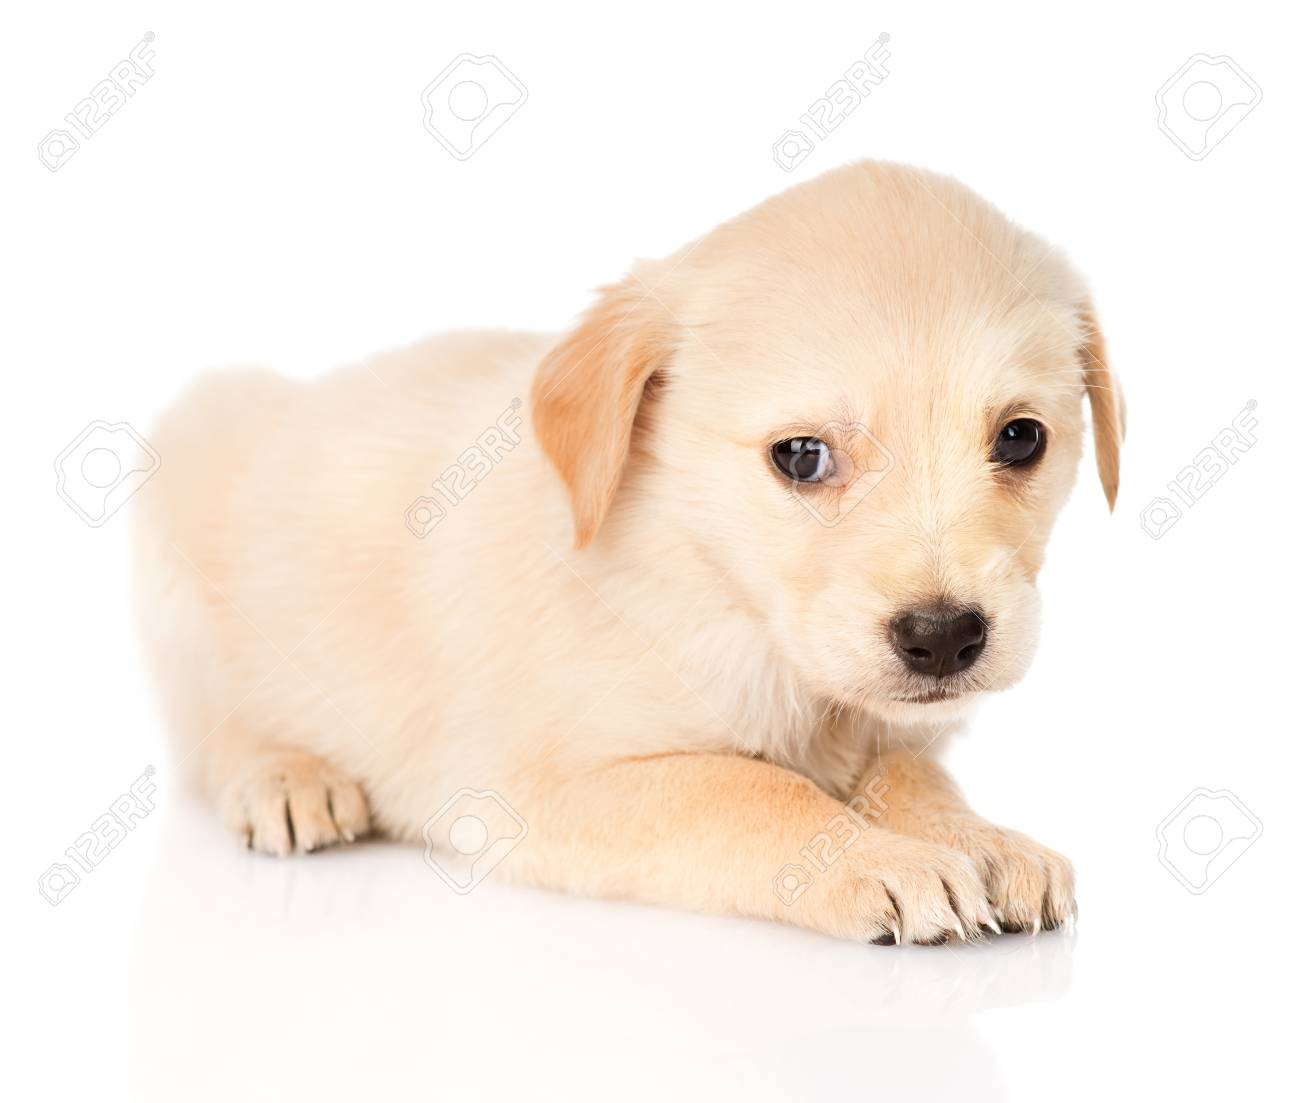 Sad Golden Retriever Puppy Dog Isolated On White Background Stock Photo Picture And Royalty Free Image Image 27783992